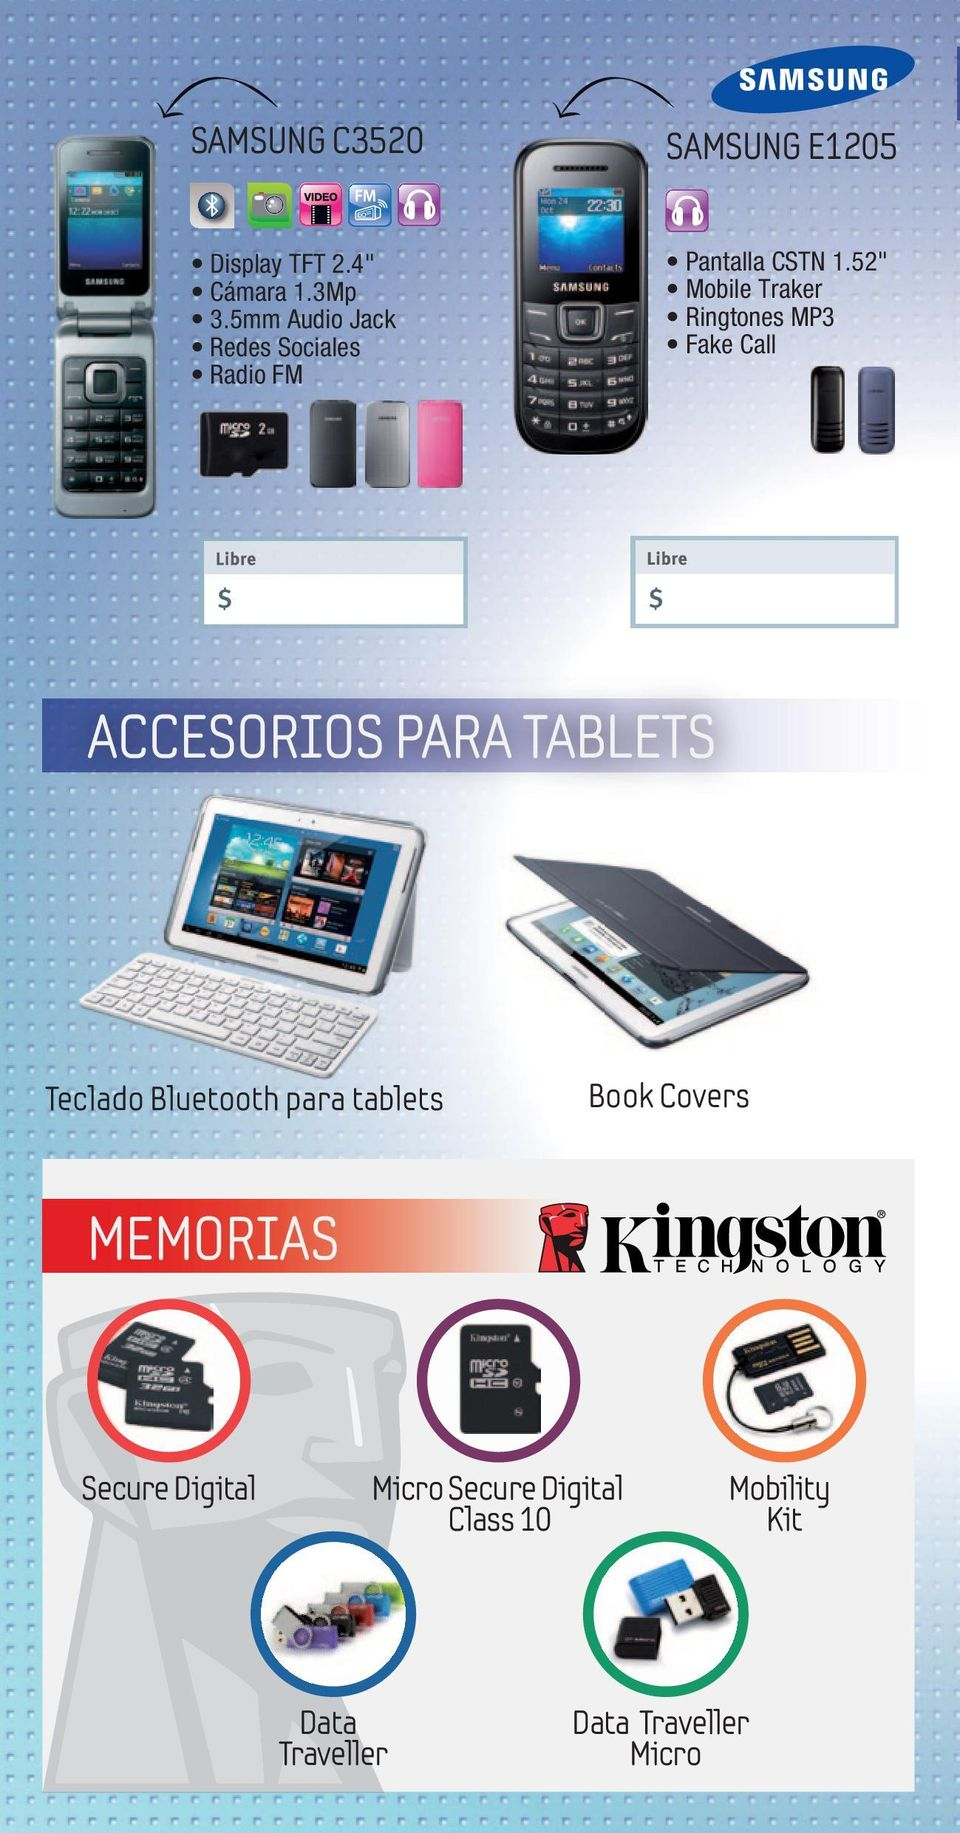 "52"" Mobile Traker Ringtones MP3 Fake Call ACCESORIOS PARA TABLETS Teclado"